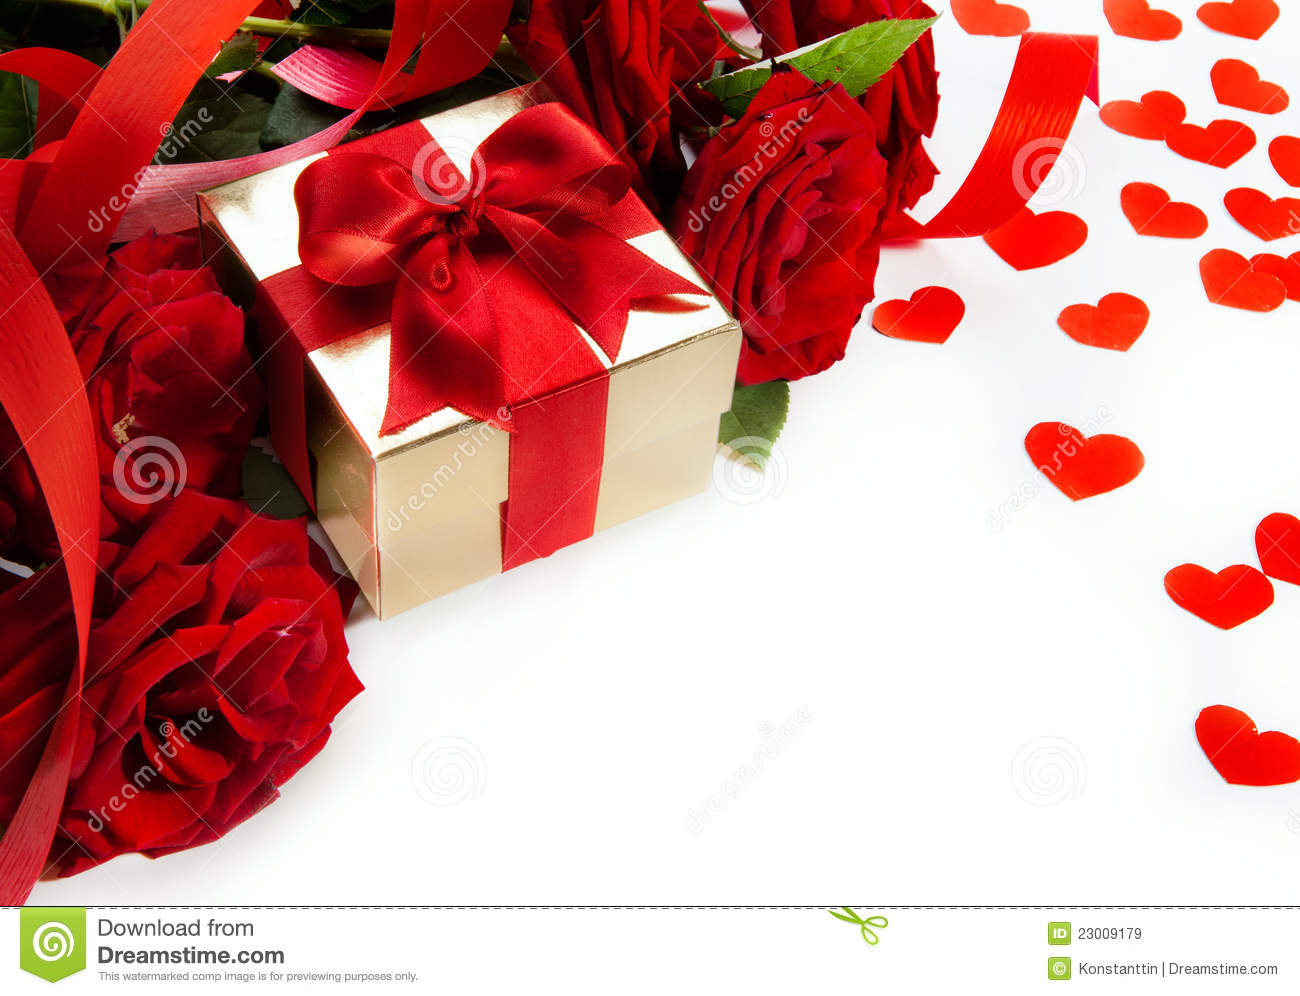 art valentines red roses and gift box stock image